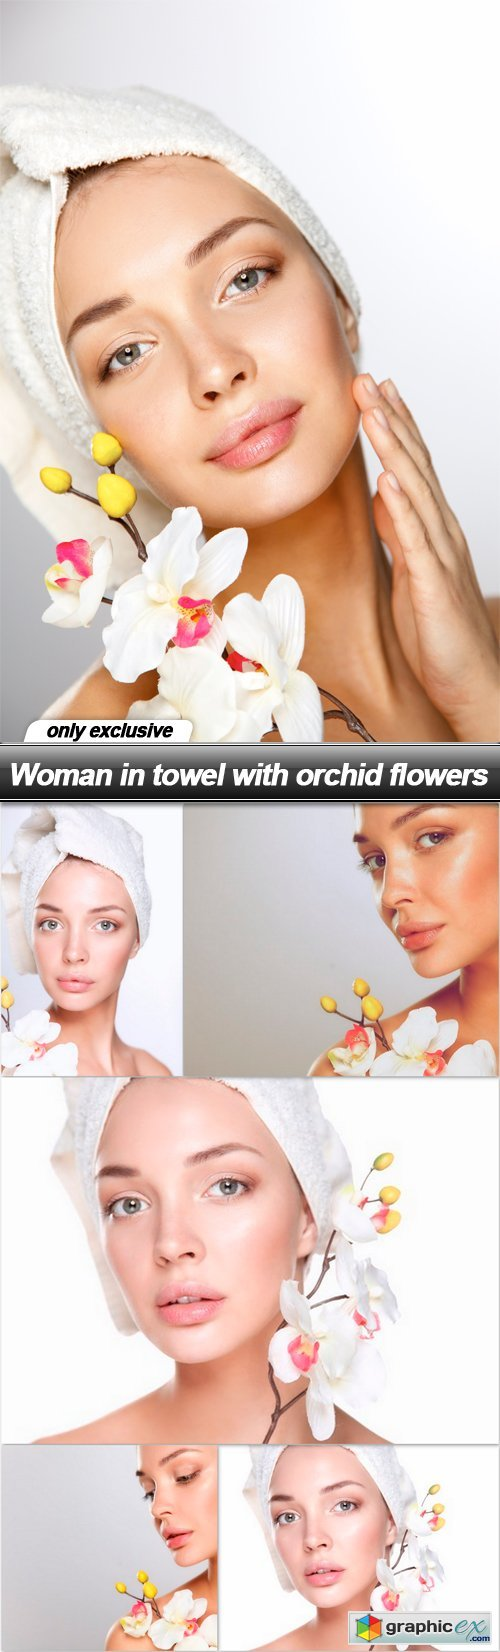 Woman in towel with orchid flowers - 6 UHQ JPEG